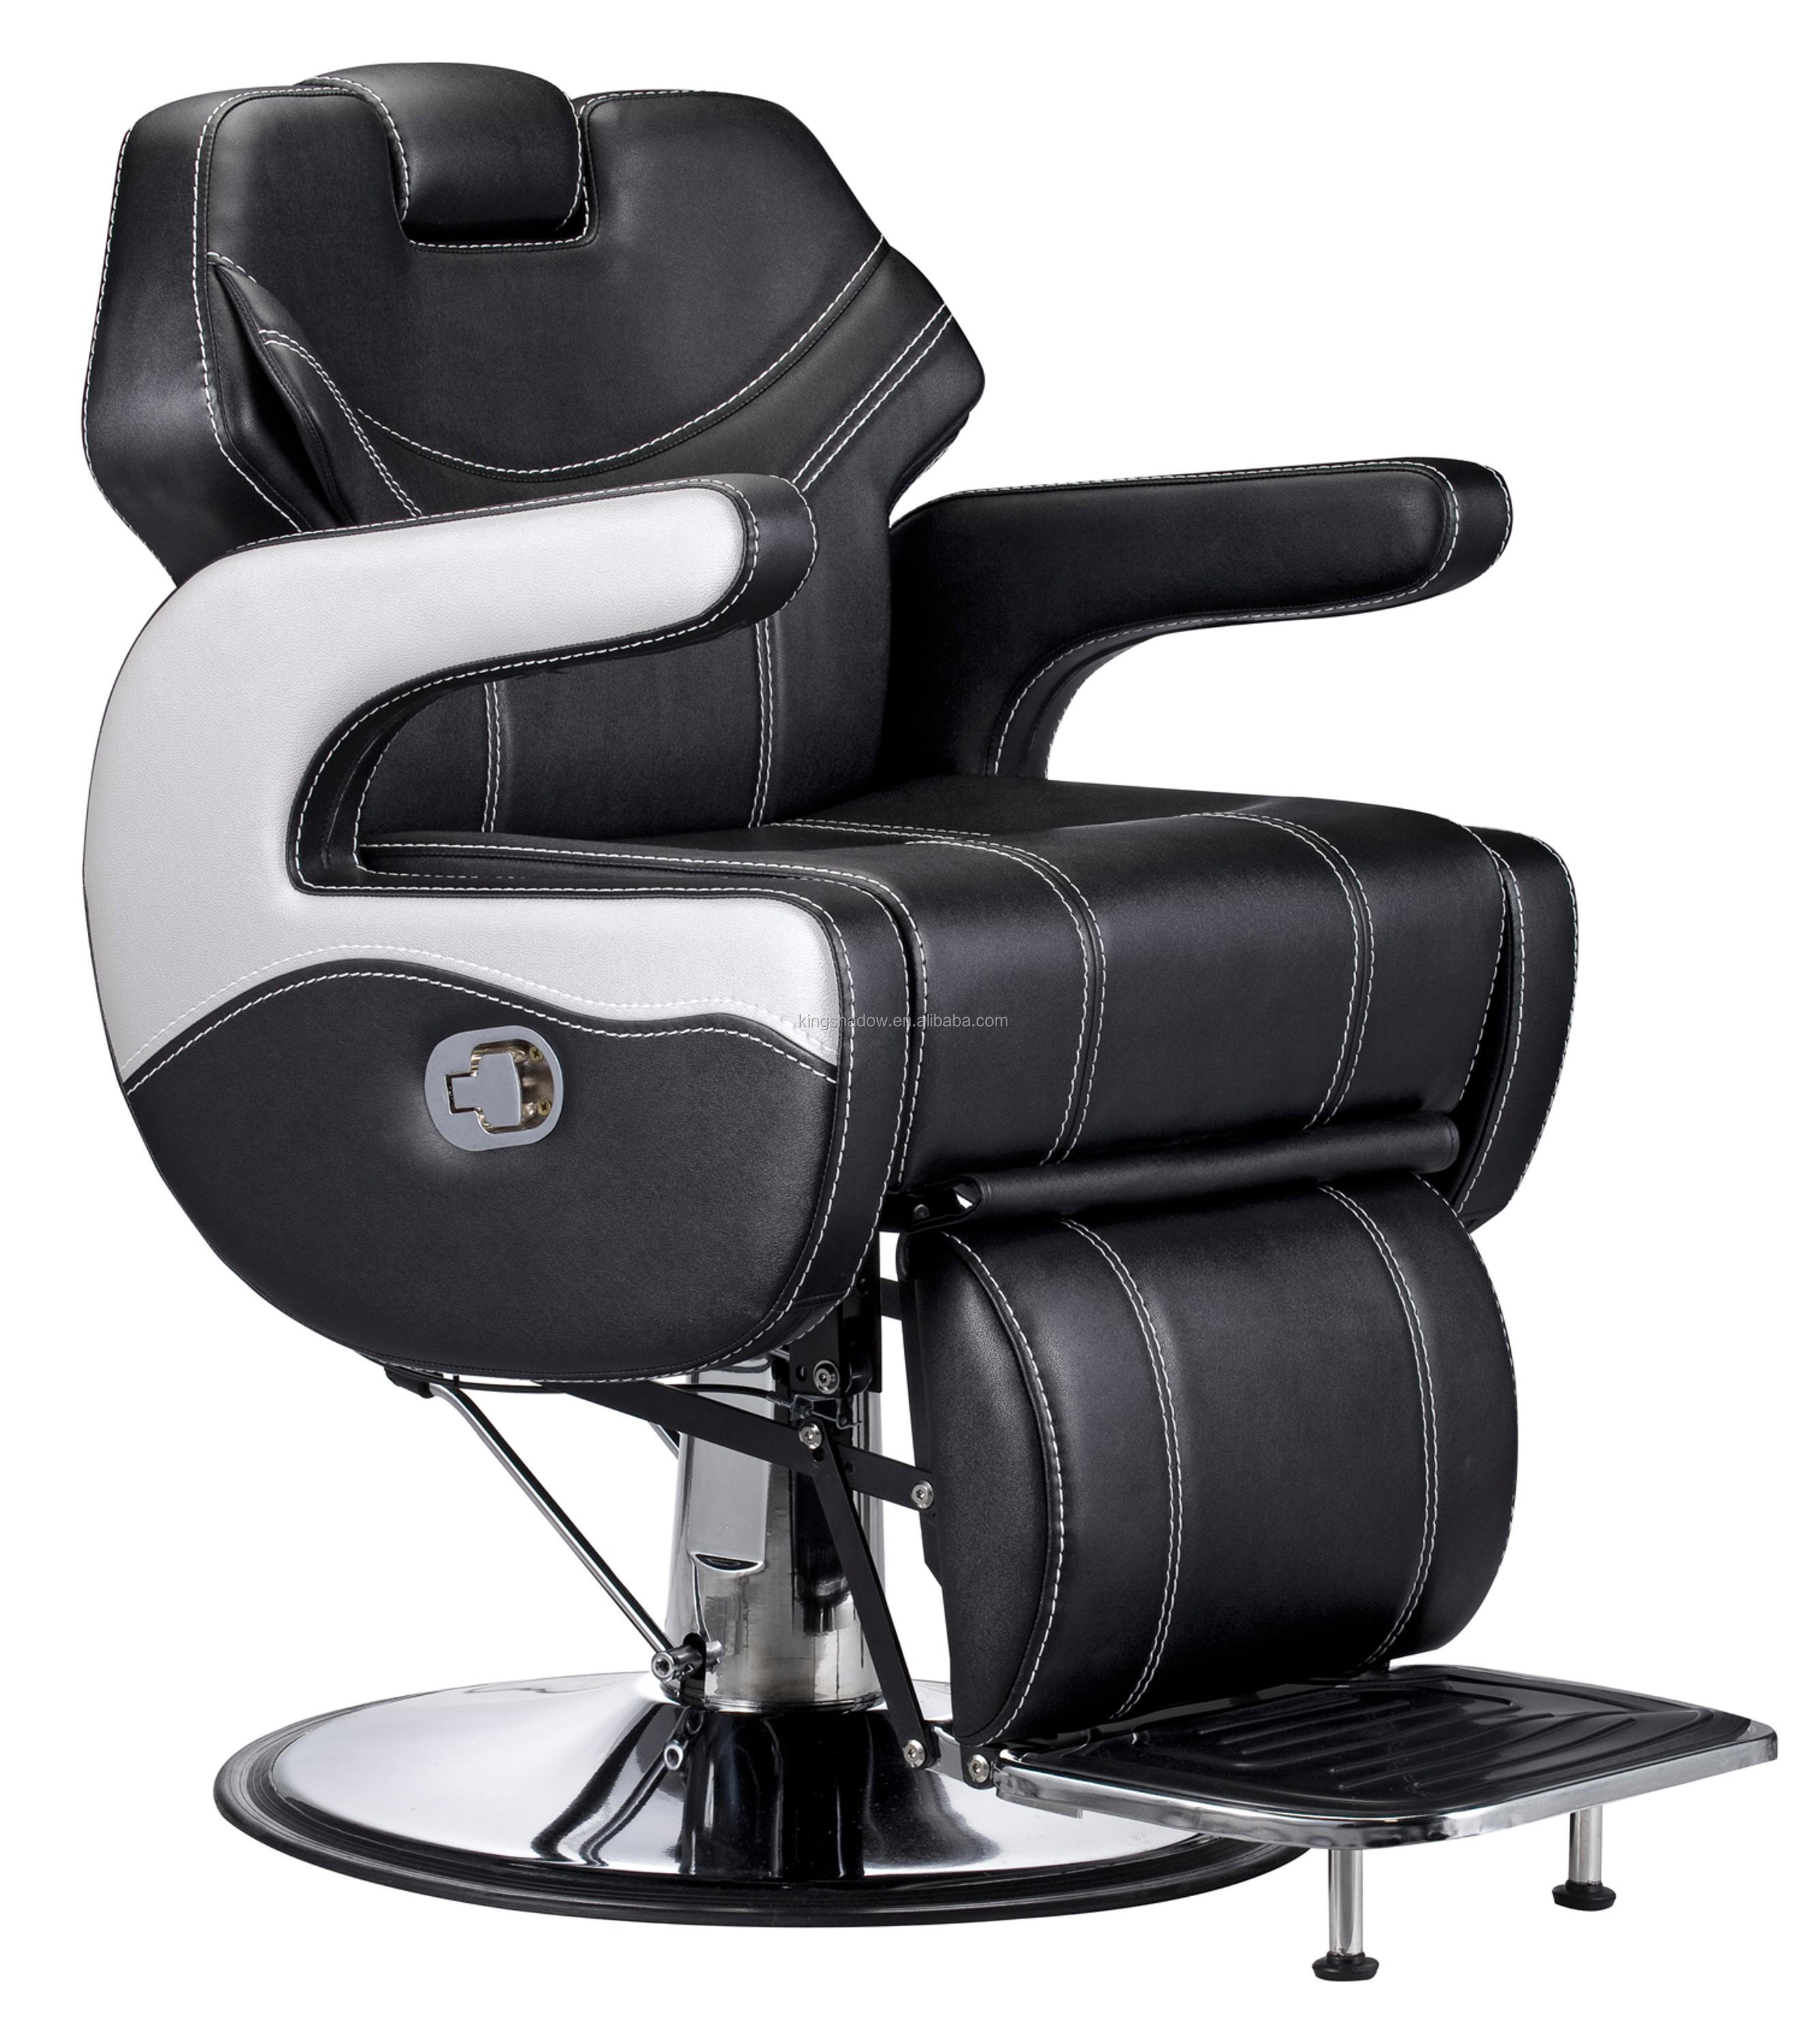 Hair Salon Reclining Barber Chairs For Hair Salon Equipment Used